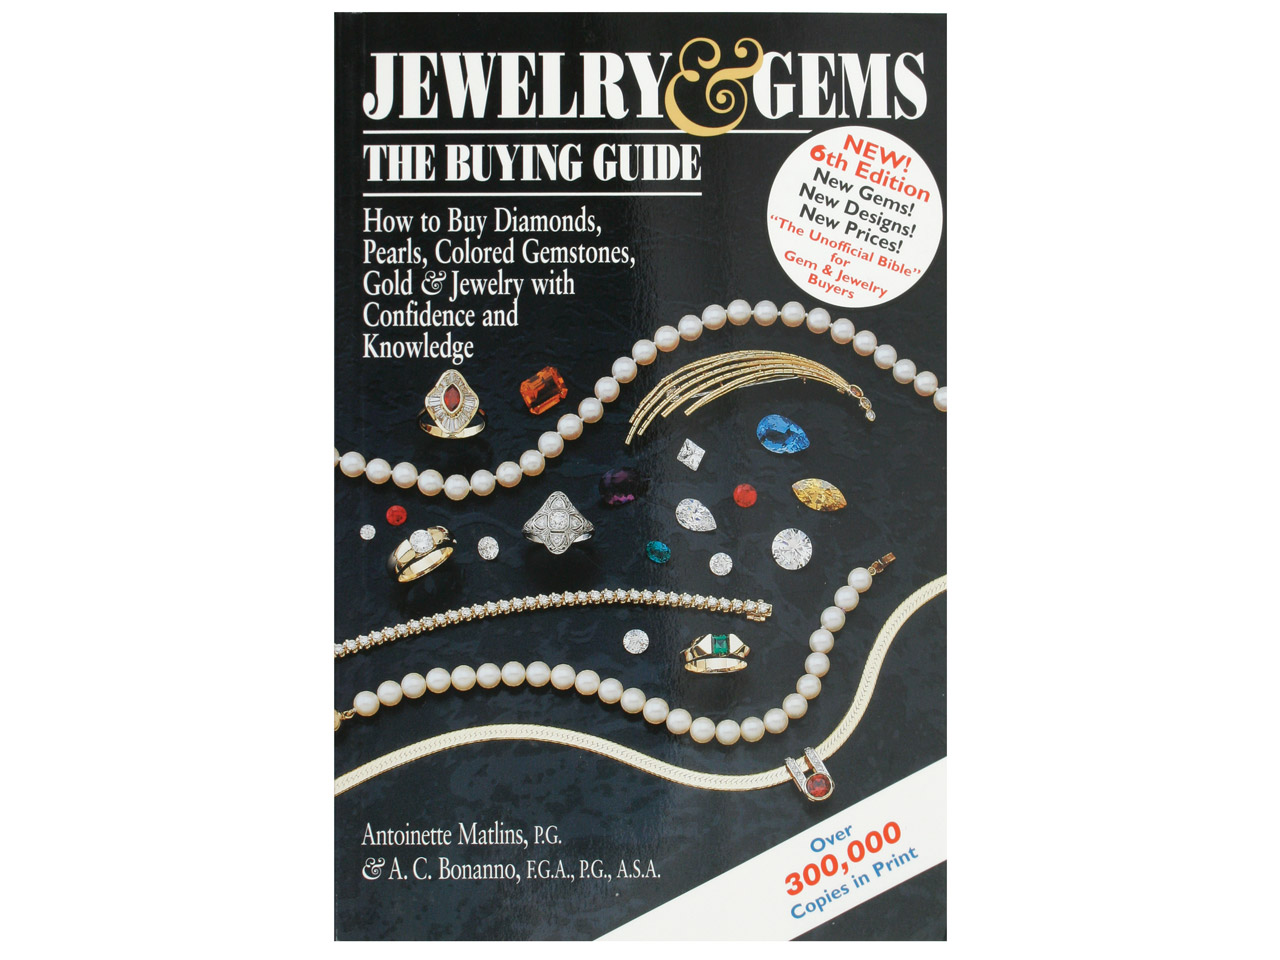 Jewellery And Gems The Buying Guide By Antoinette Matlins